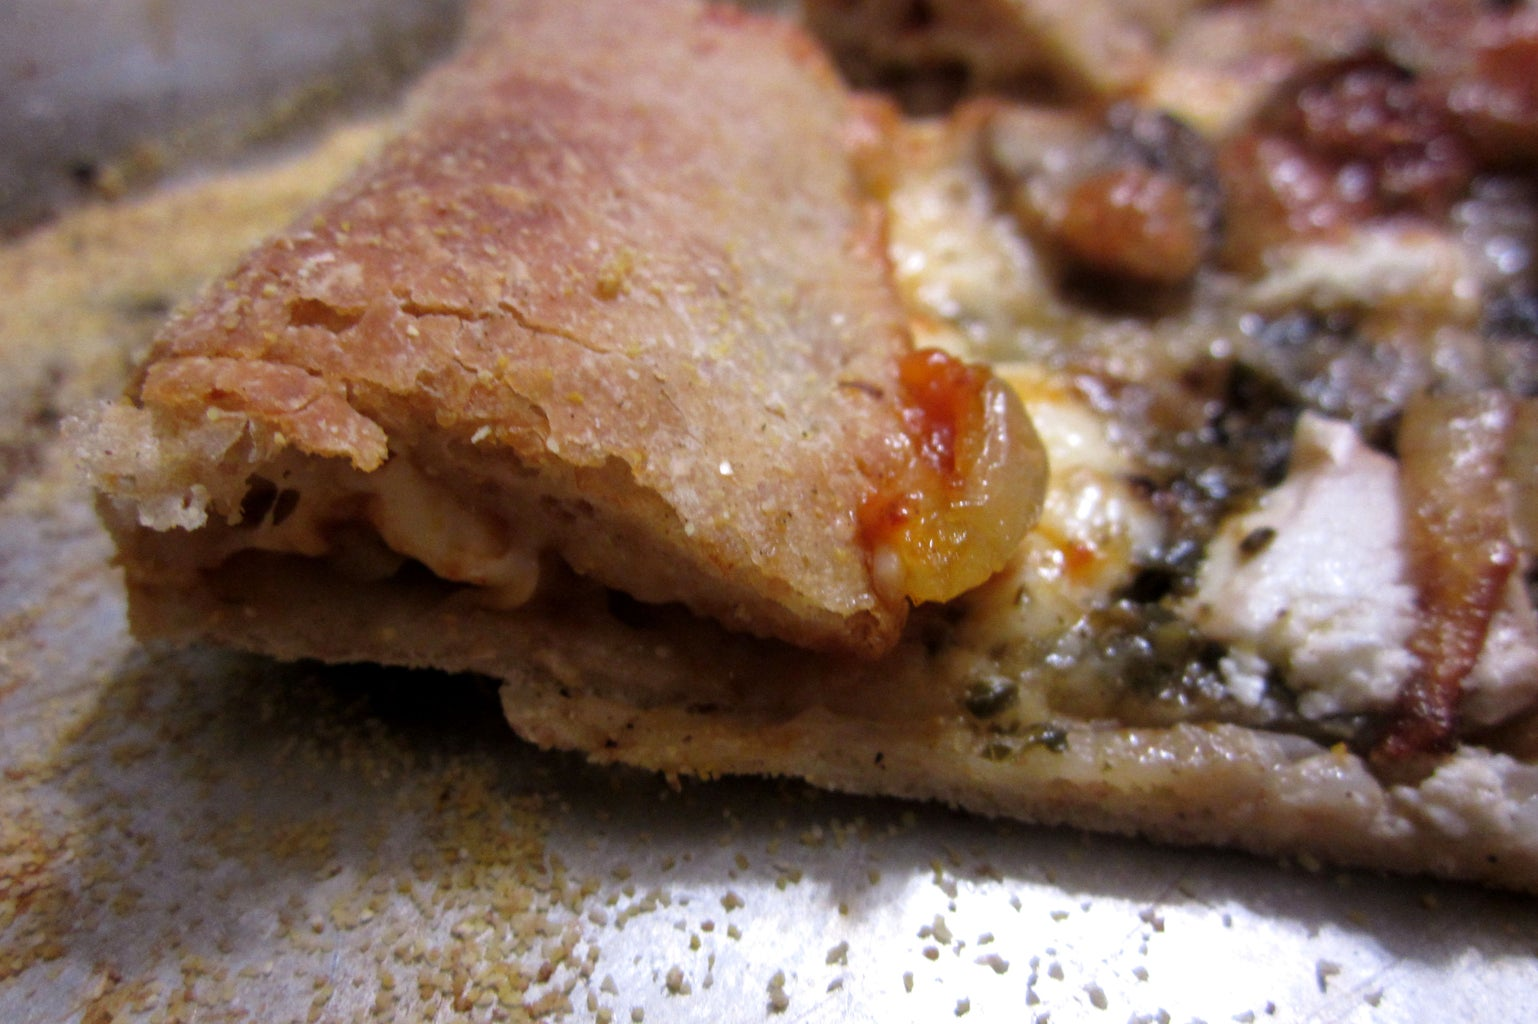 PIZZA-CEPTION: Pizza-Stuffed Crust Pizza! (with Vegetarian and Plain Cheese Options!)